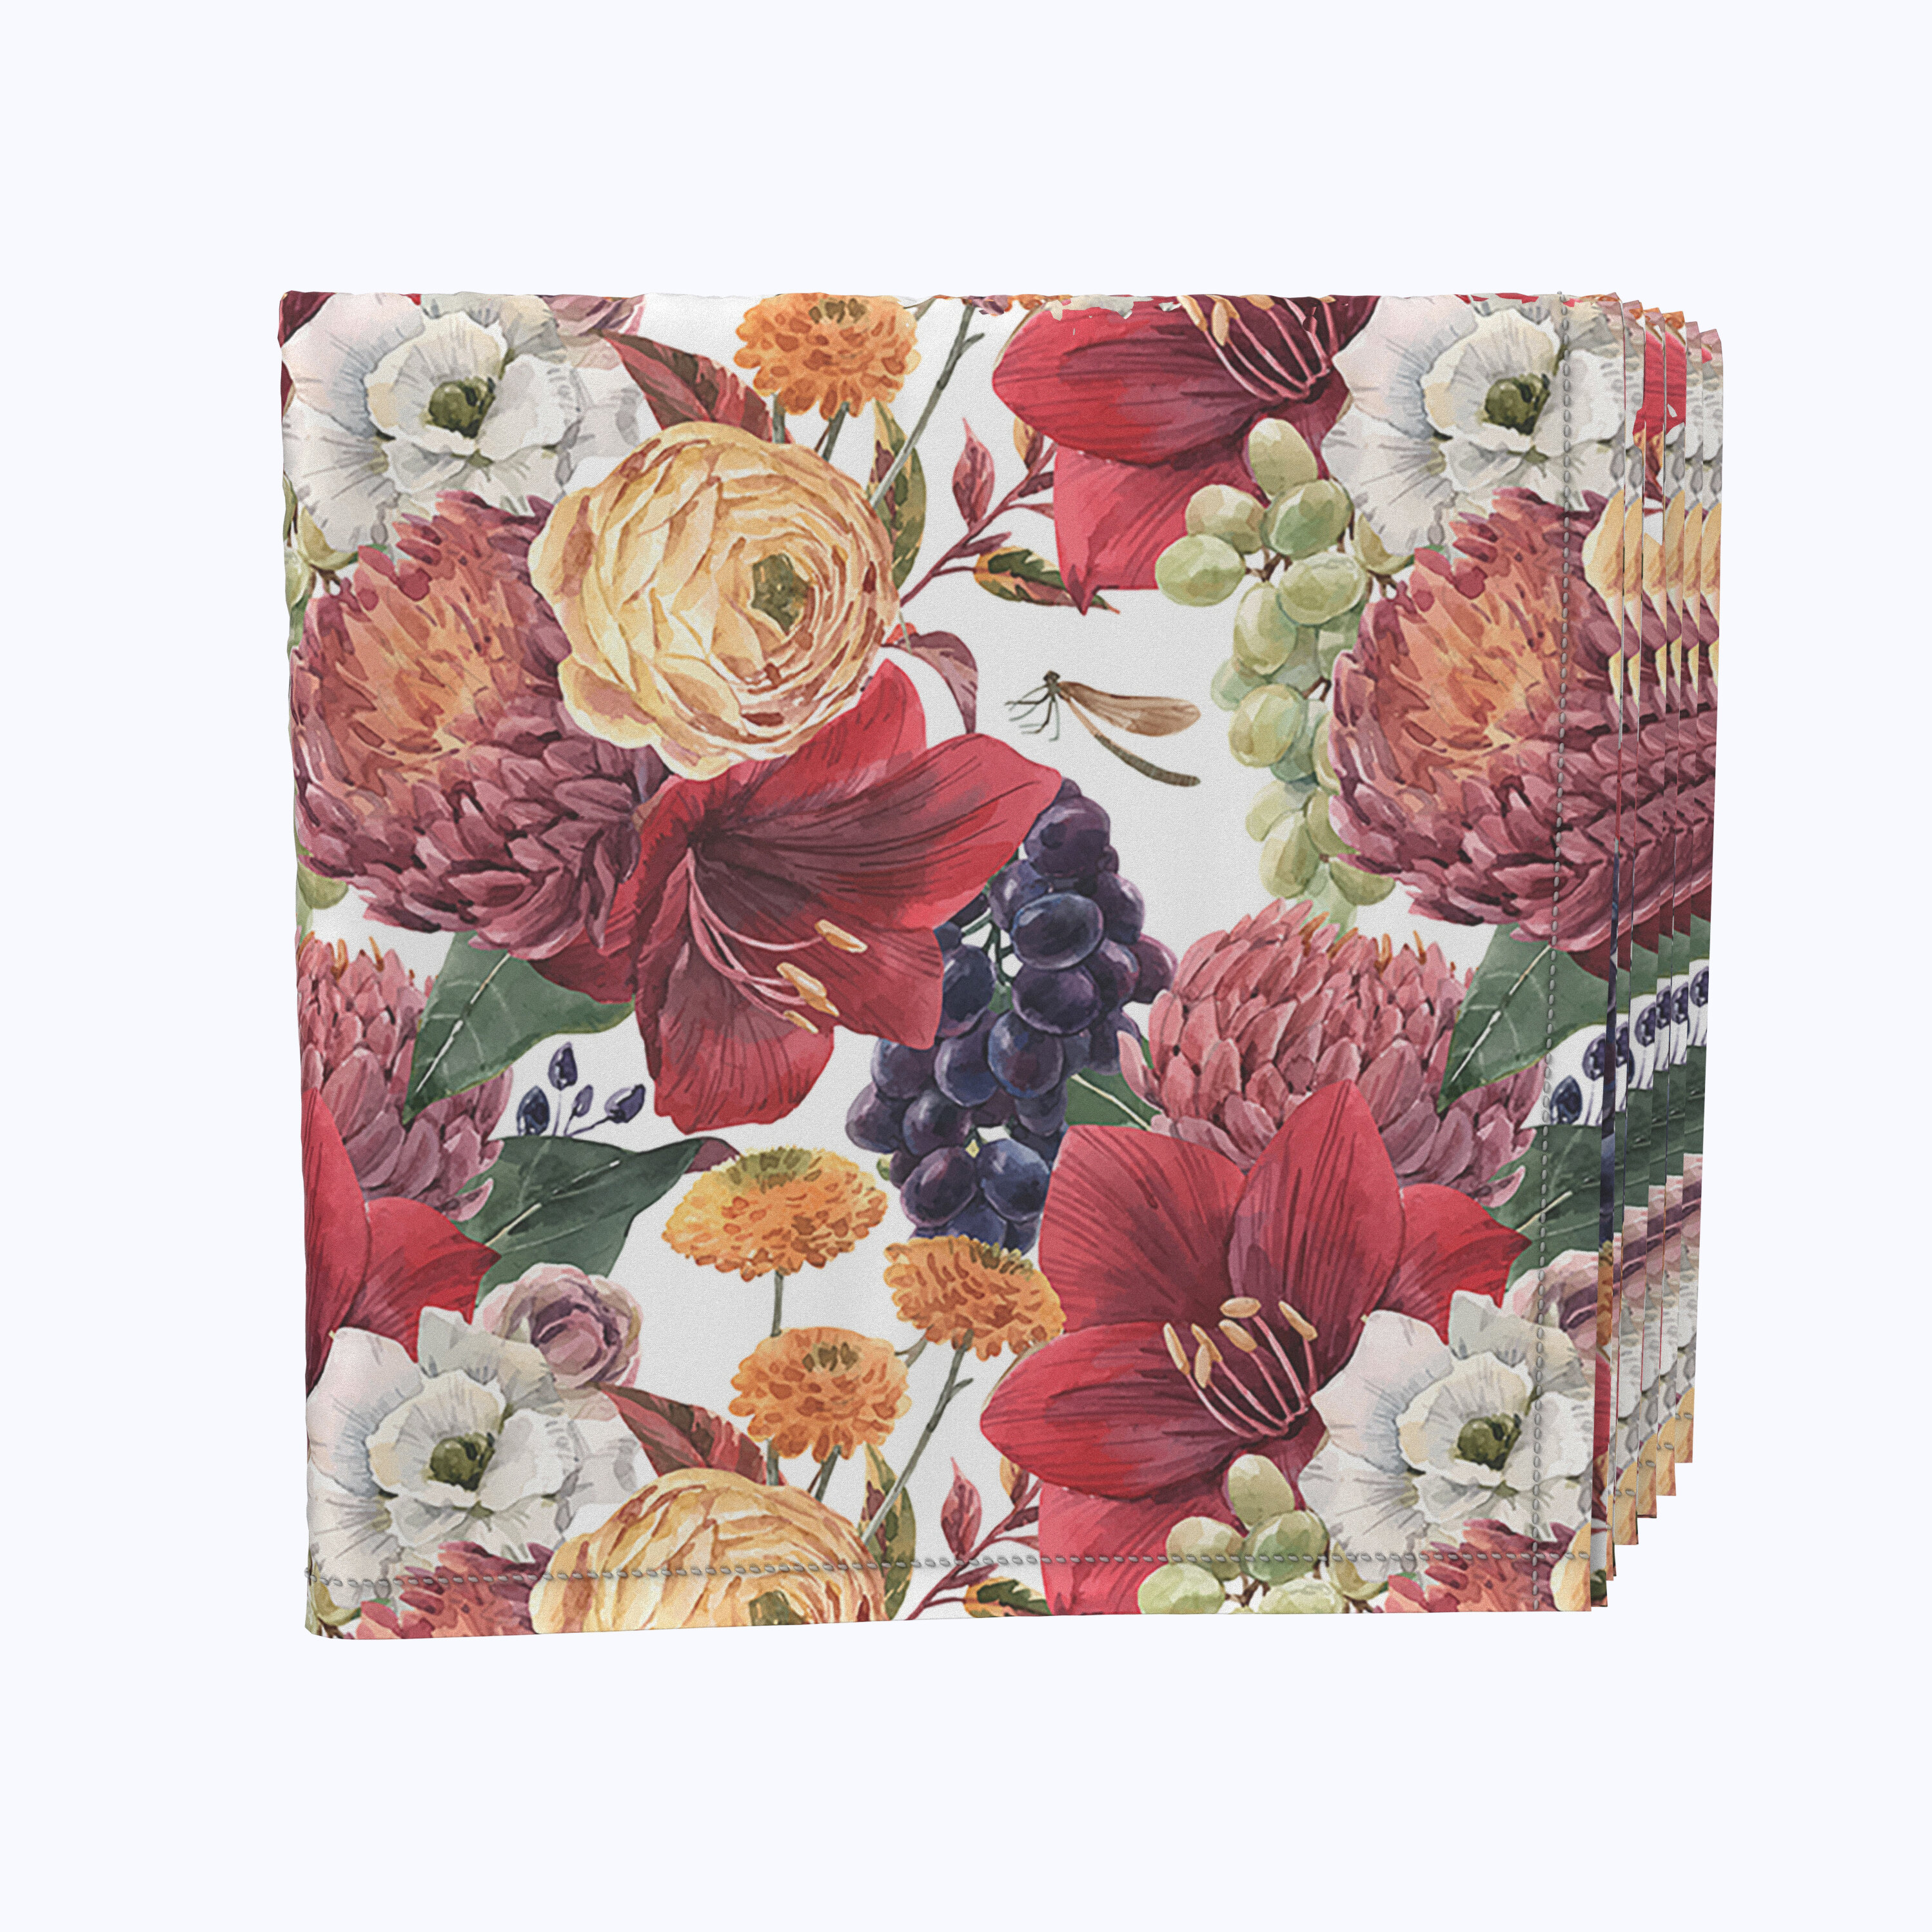 Fabric Textile Products Inc Napkin Set 100 Milliken Polyester Machine Washable Set Of 12 18x18 Watercolor Floral Grapes Wayfair